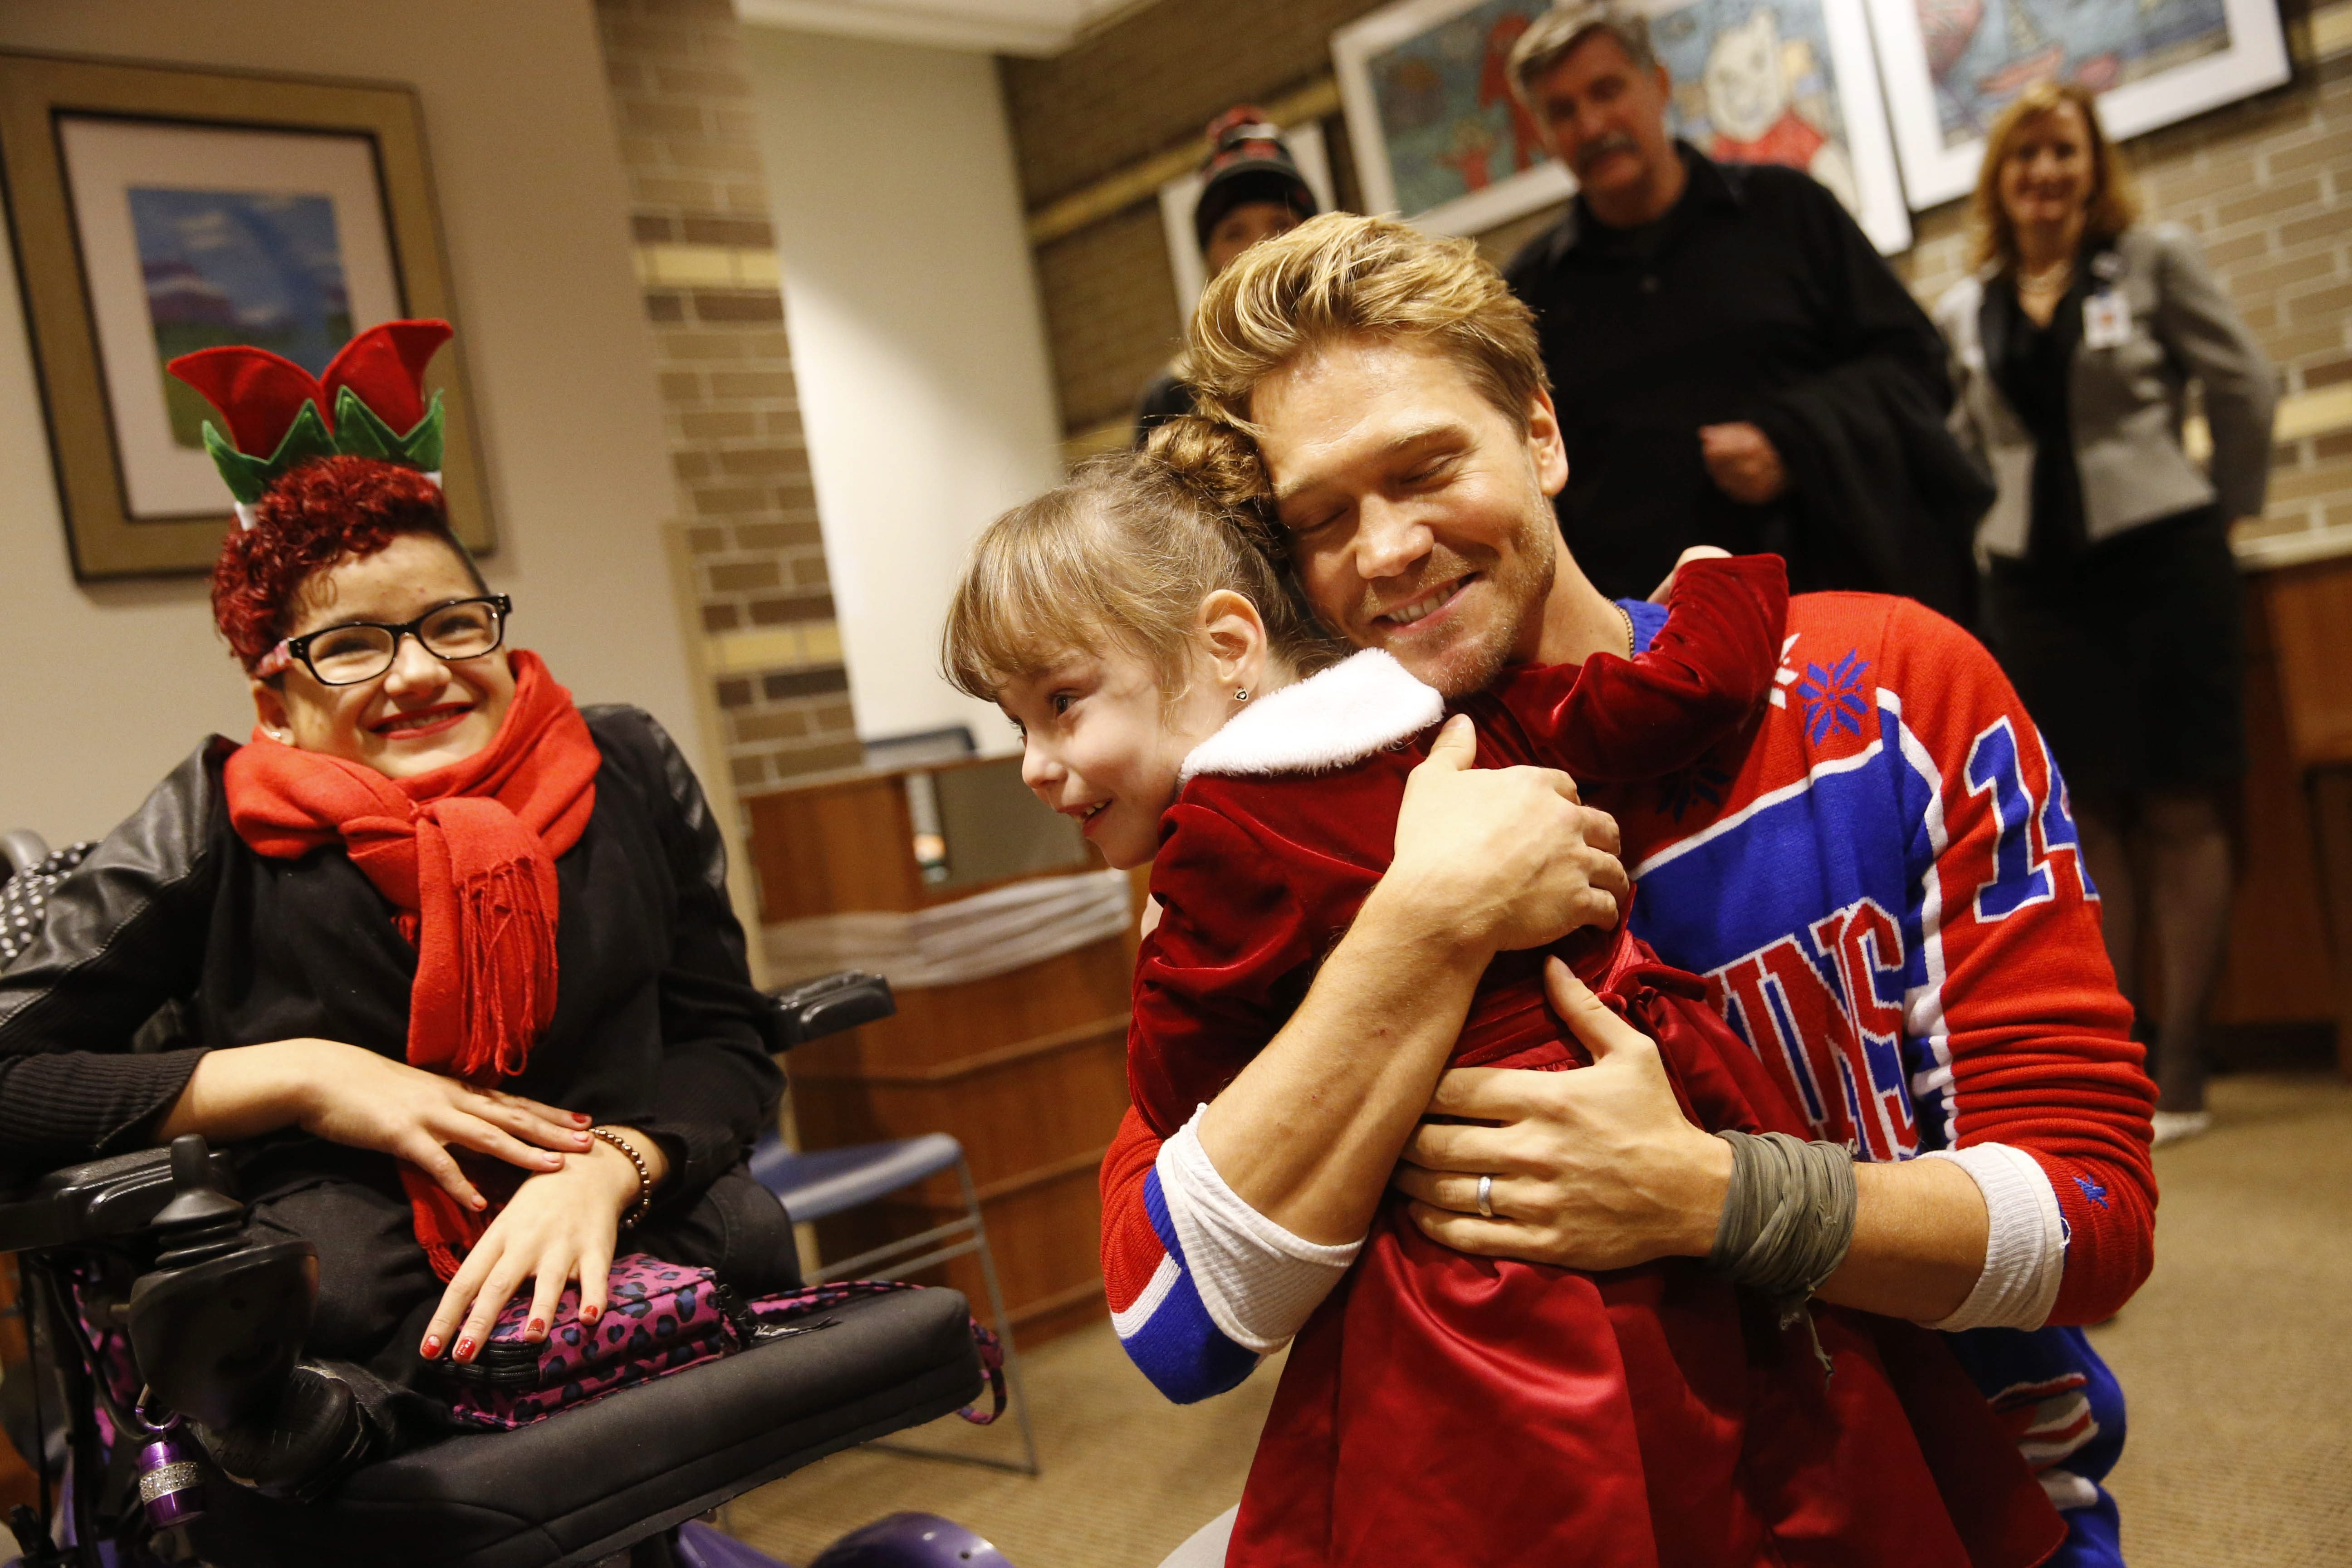 The actor Chad Michael Murray hugs 5-year-old Ava Hackett of Darien Center as Natalie Rivera, 17, left, looks on at Women and Children's Hospital on Wednesday.